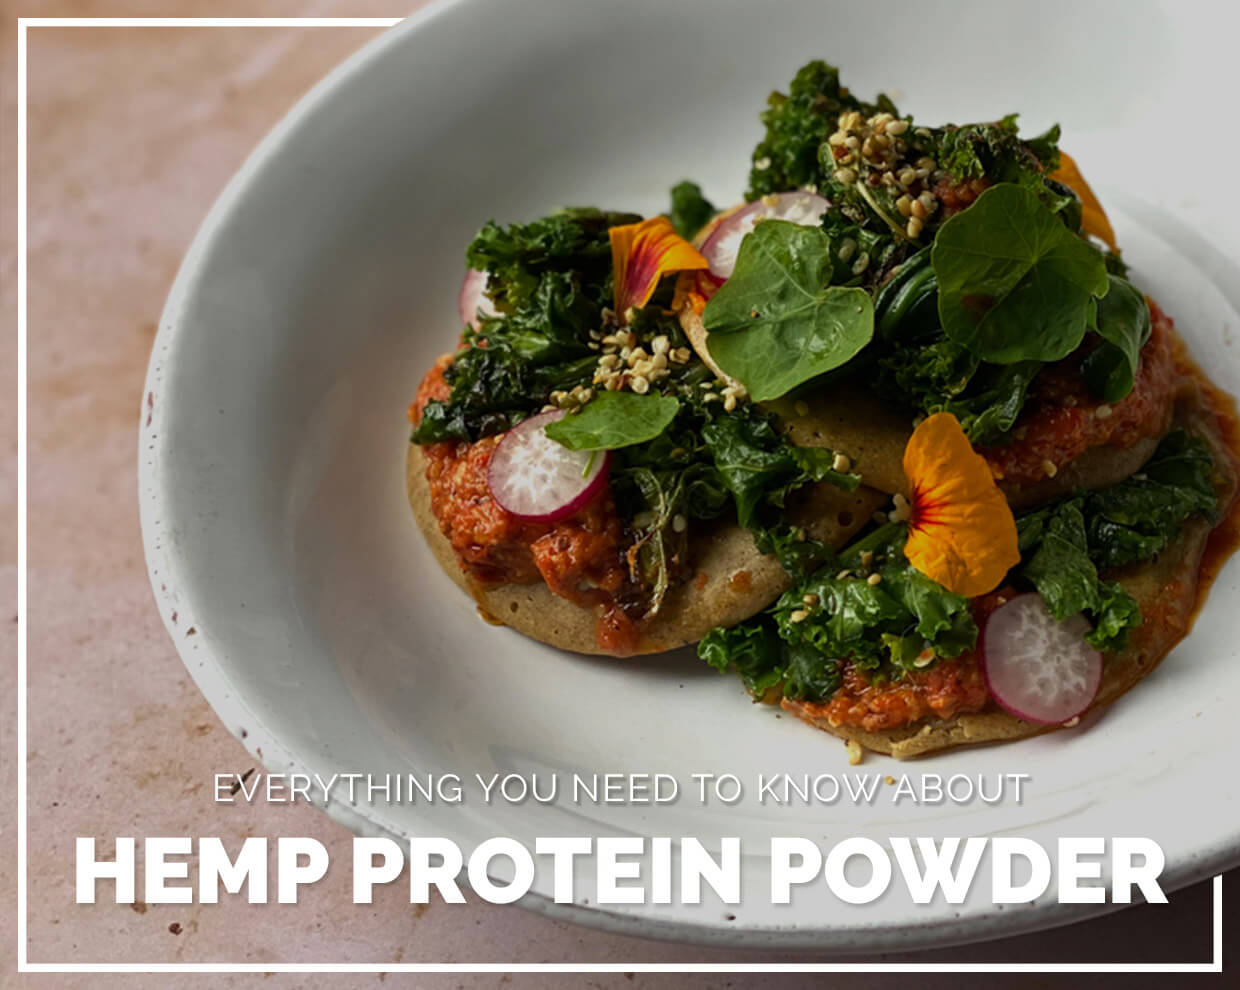 Everything you need to know about hemp protein powder